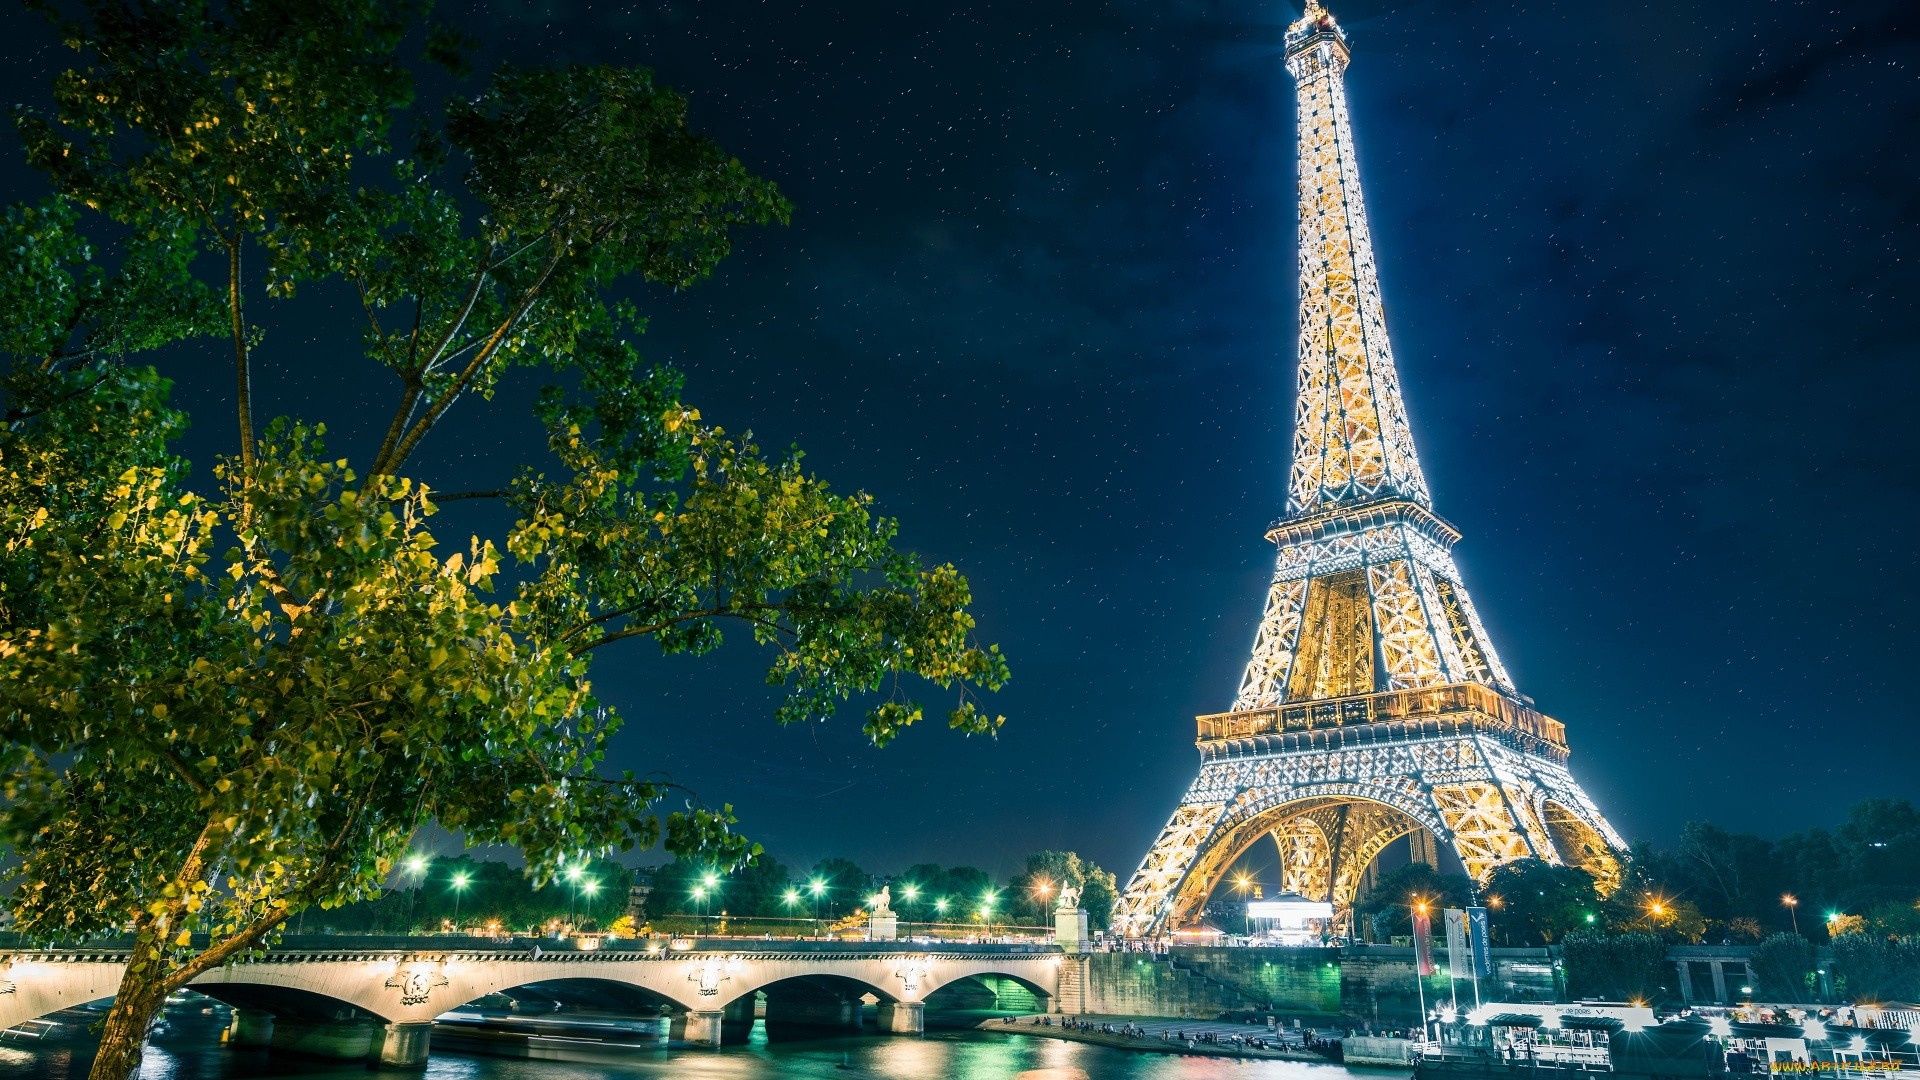 Eiffel Tower Wallpaper for pc